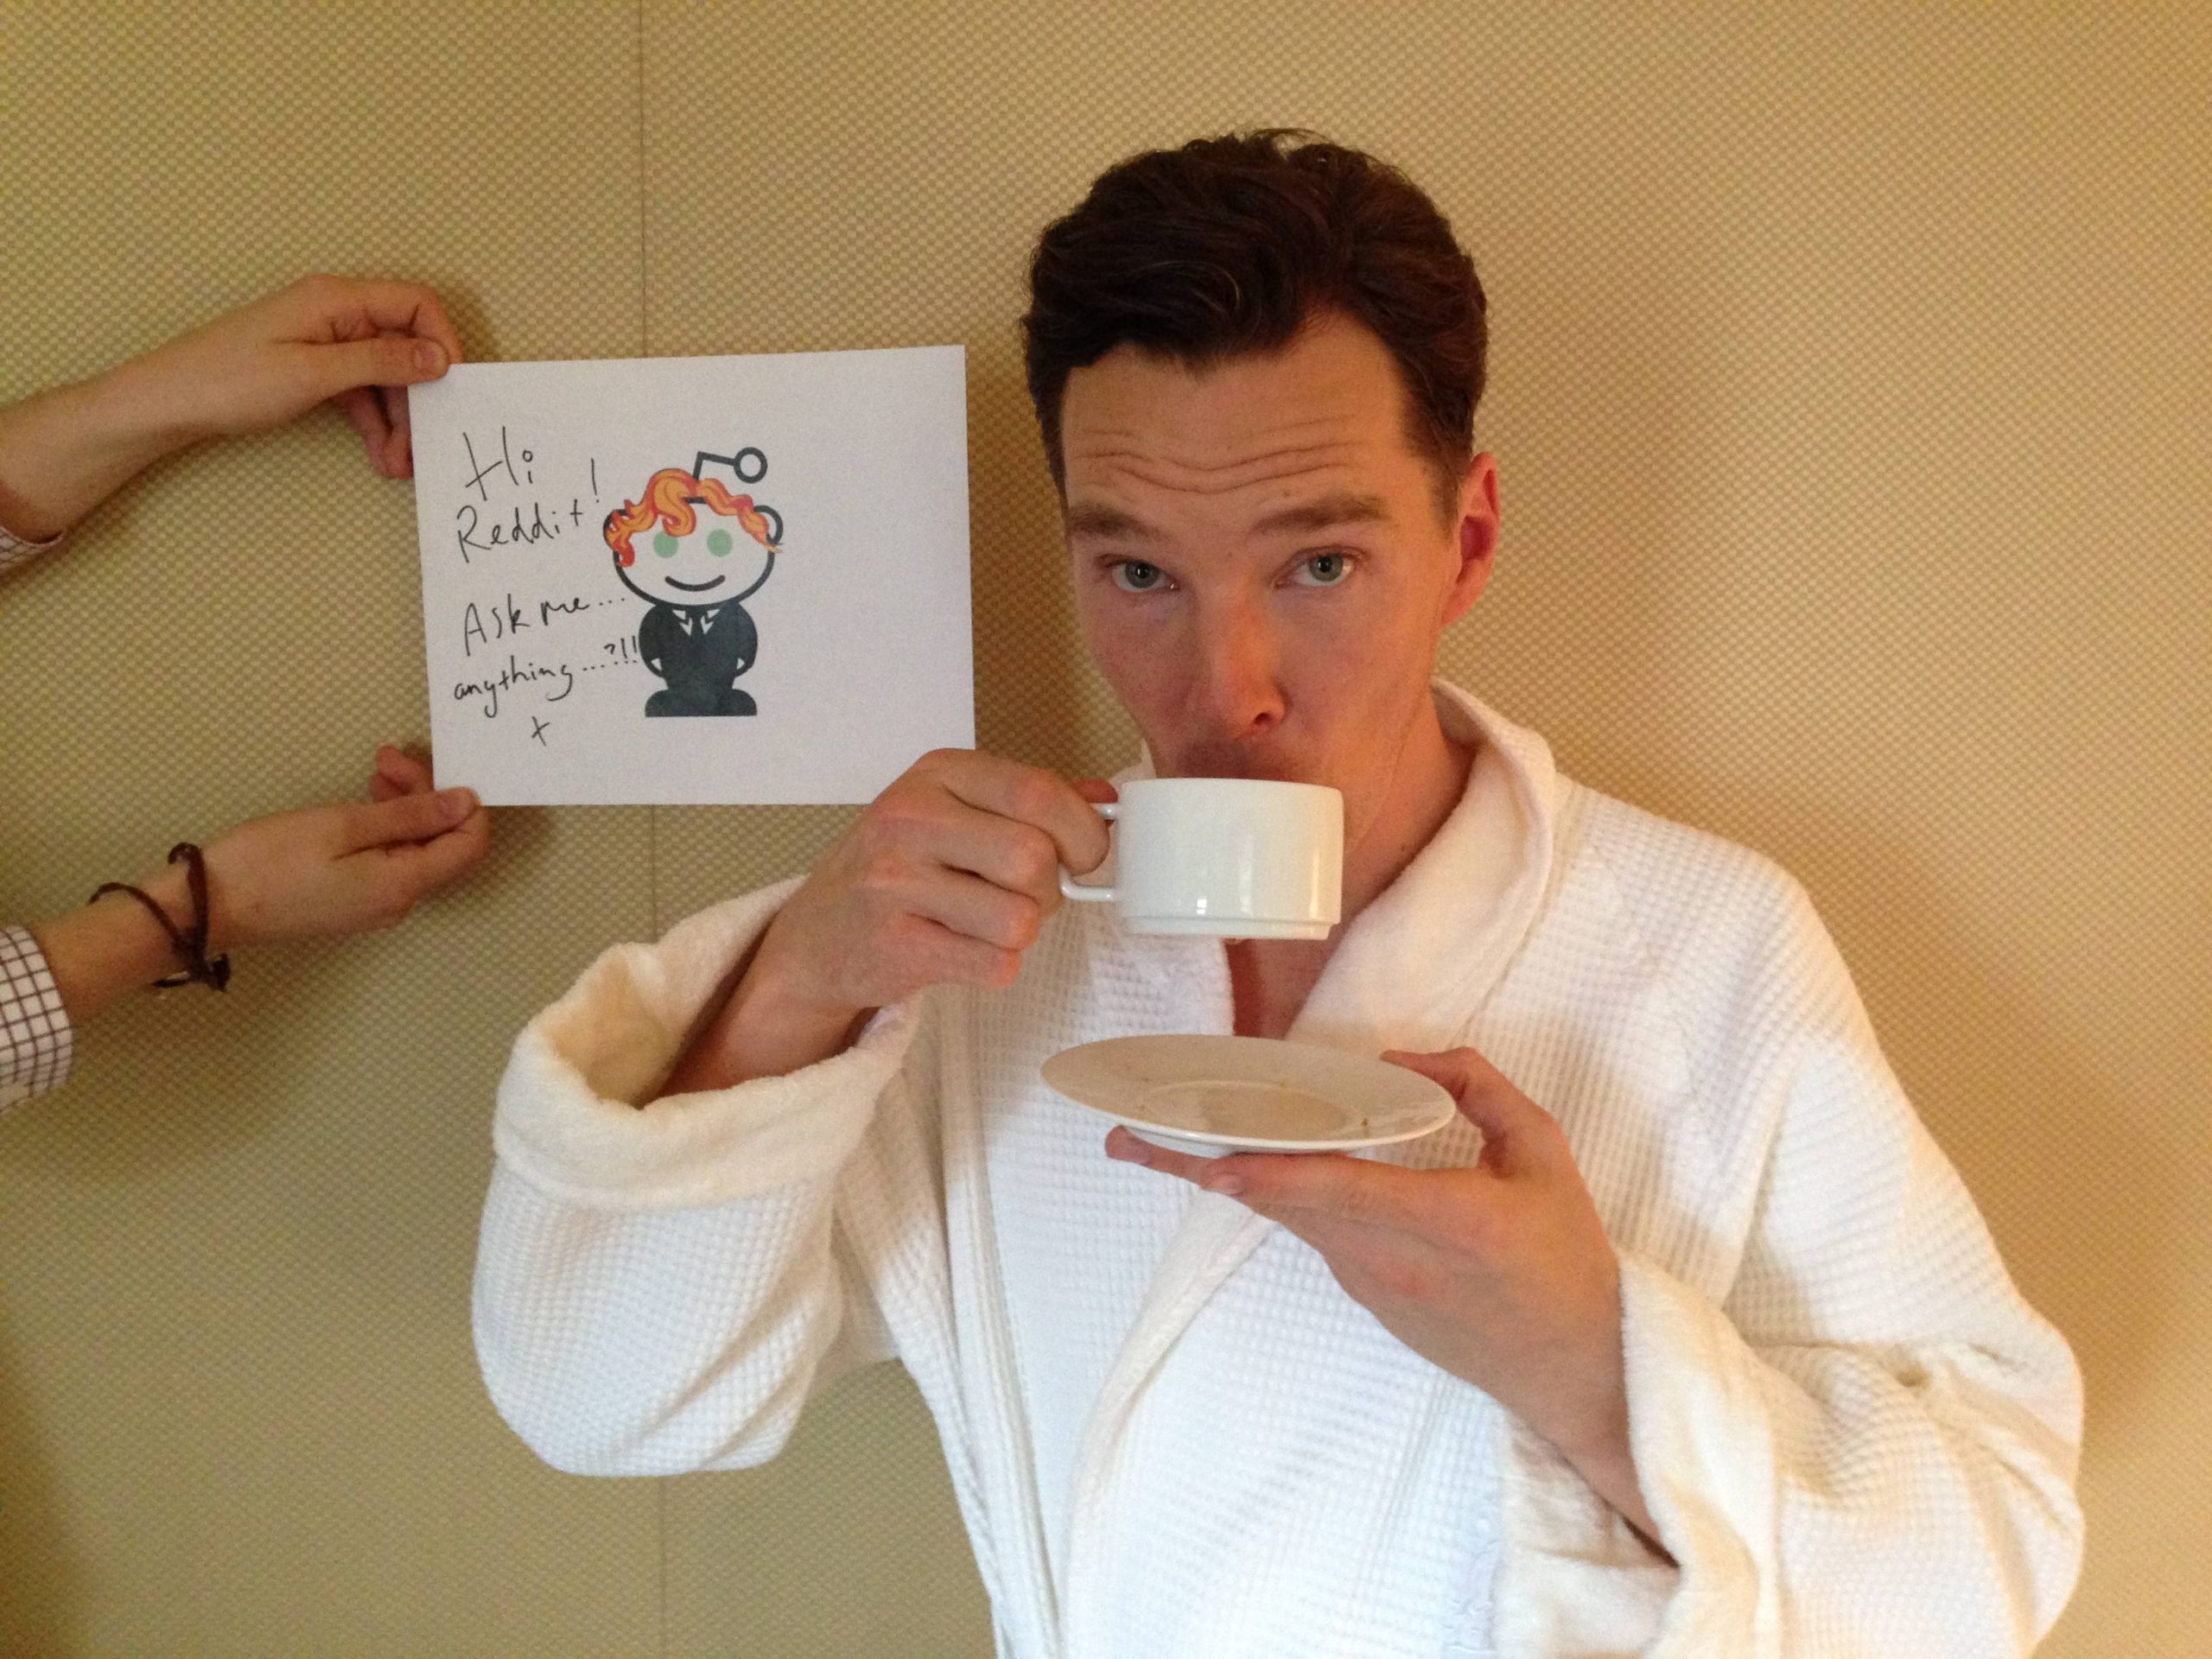 Cumberbatch Reddit AMA- Sarcasm, Time Traveling Cheekbone Polishing Parties, & Personal Message to Julian Assange